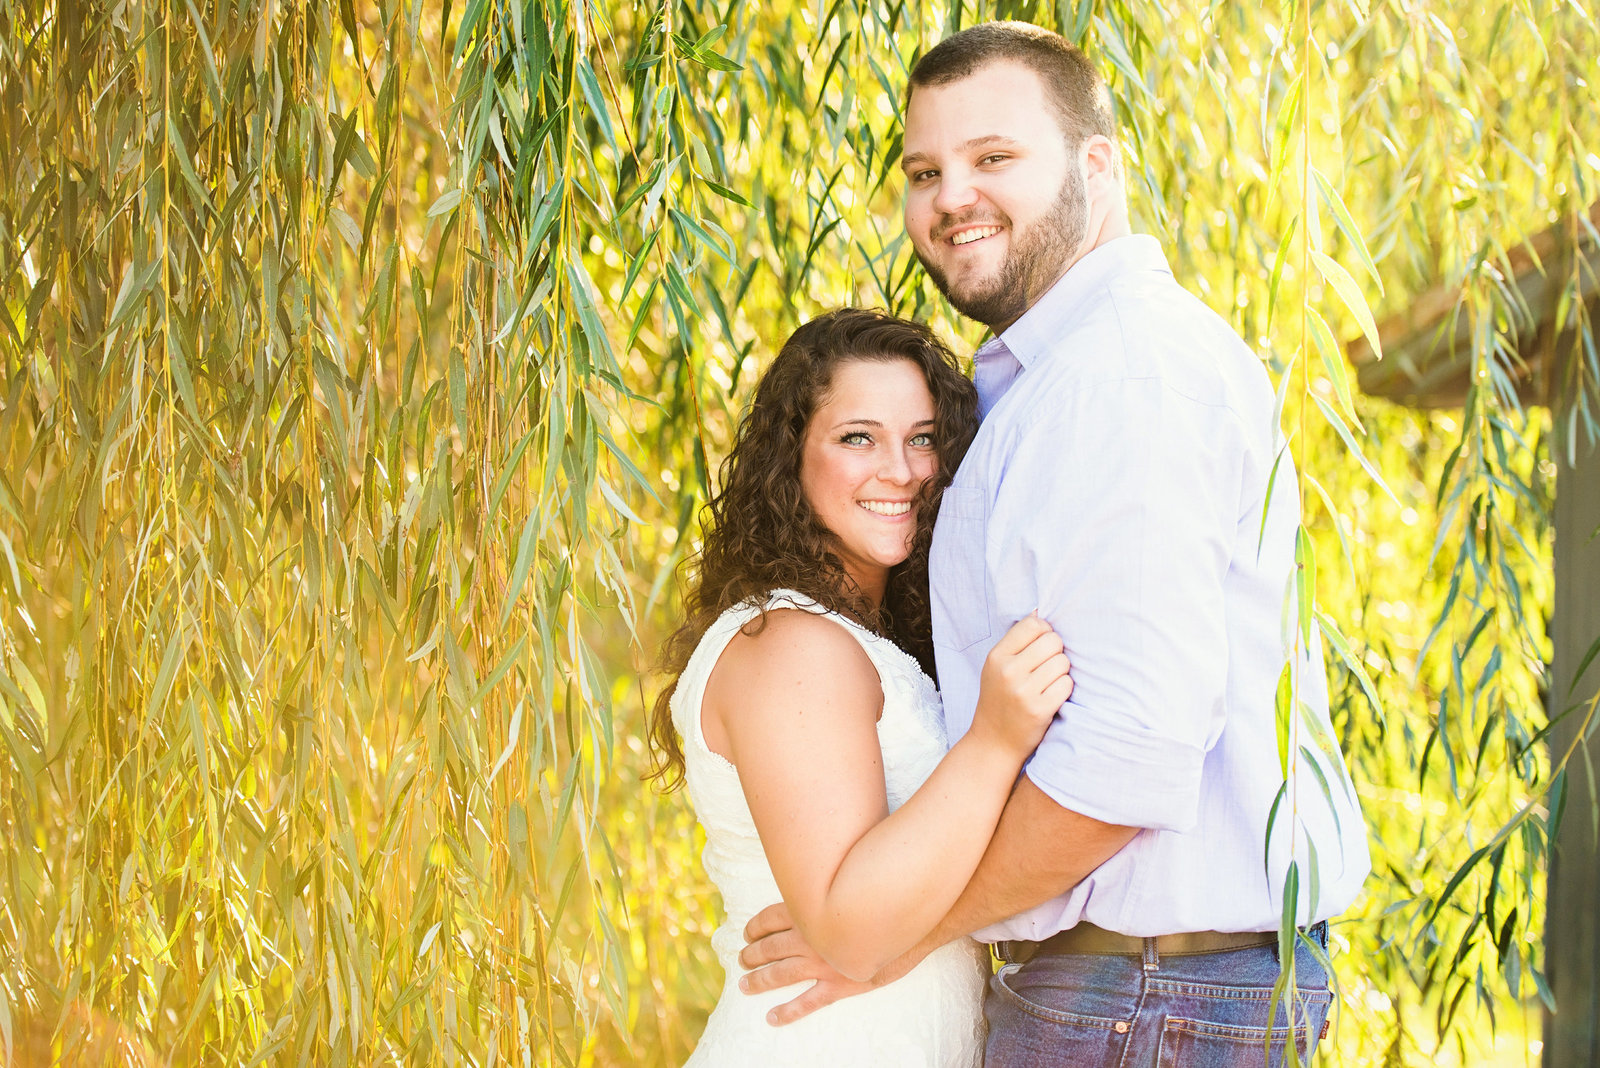 NJ_Rustic_Engagement_Photography000